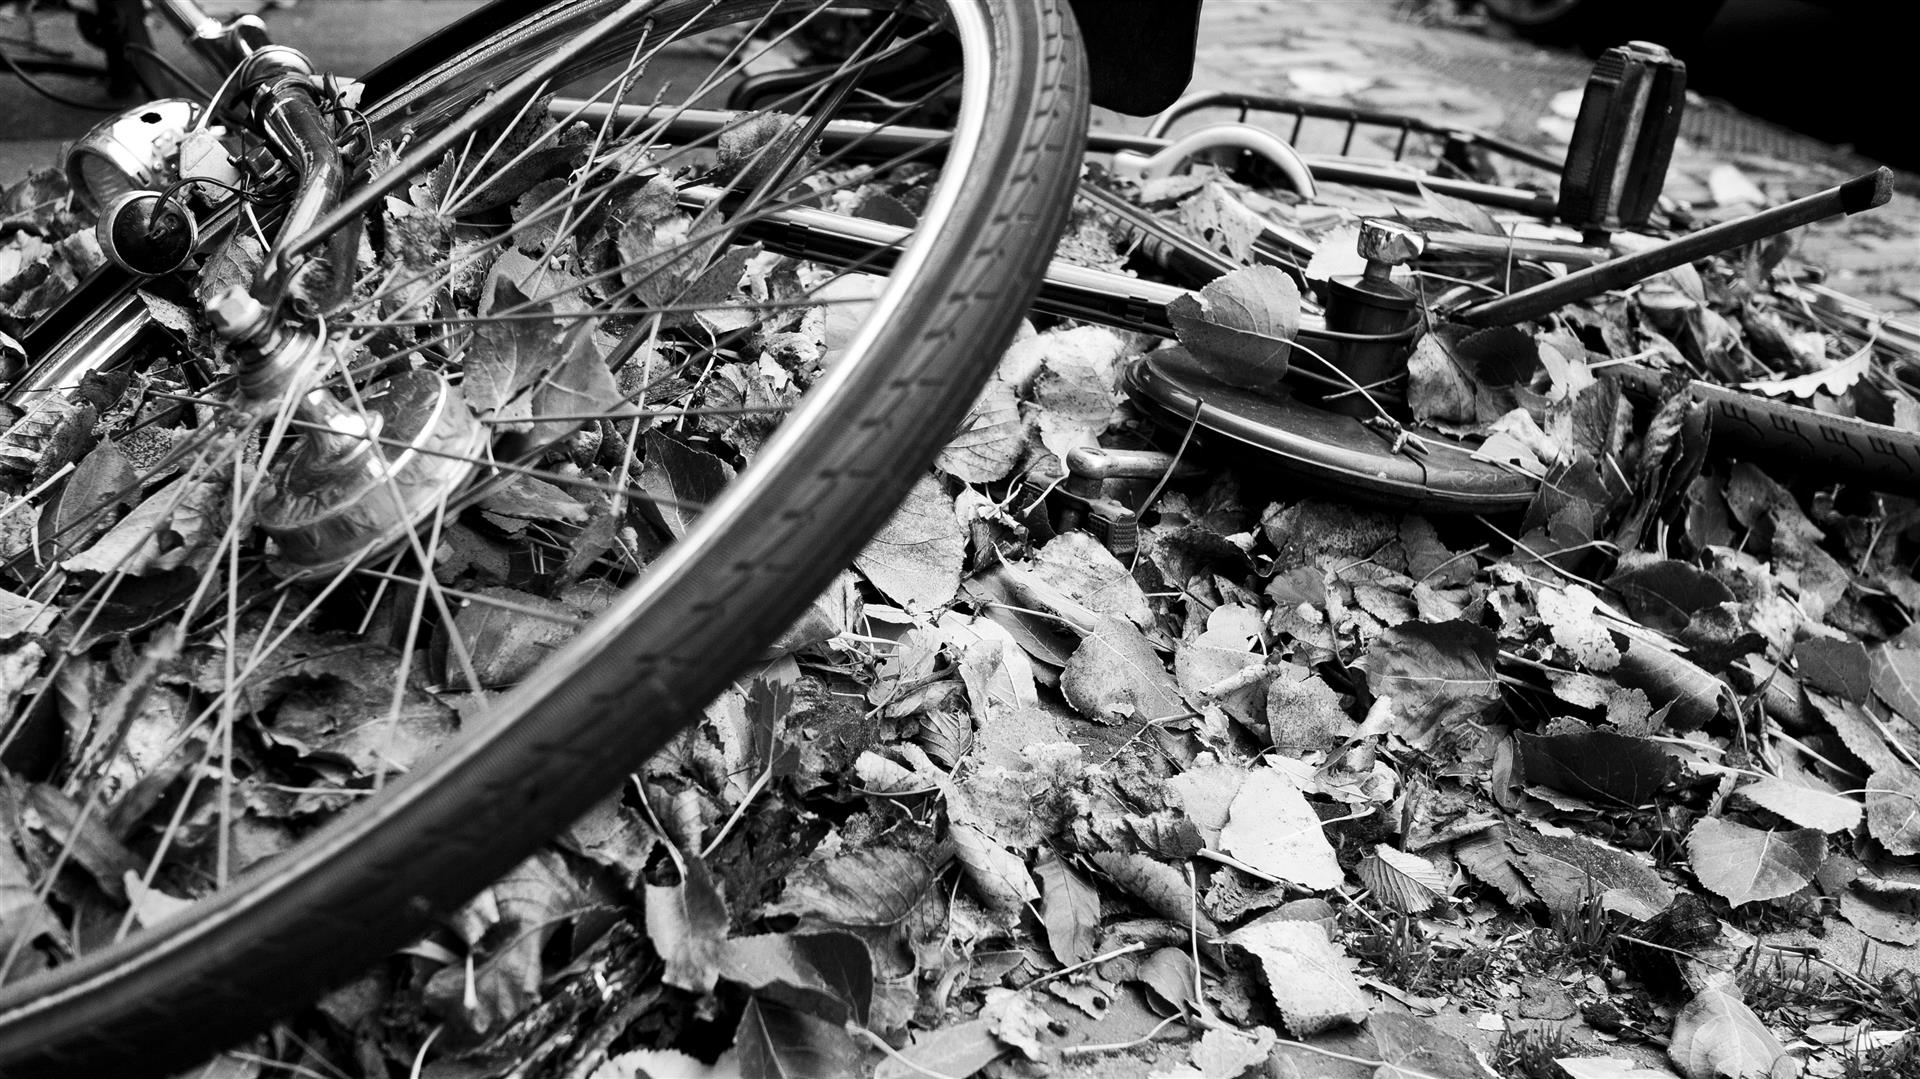 leaves piling up underneath fallen bicicle